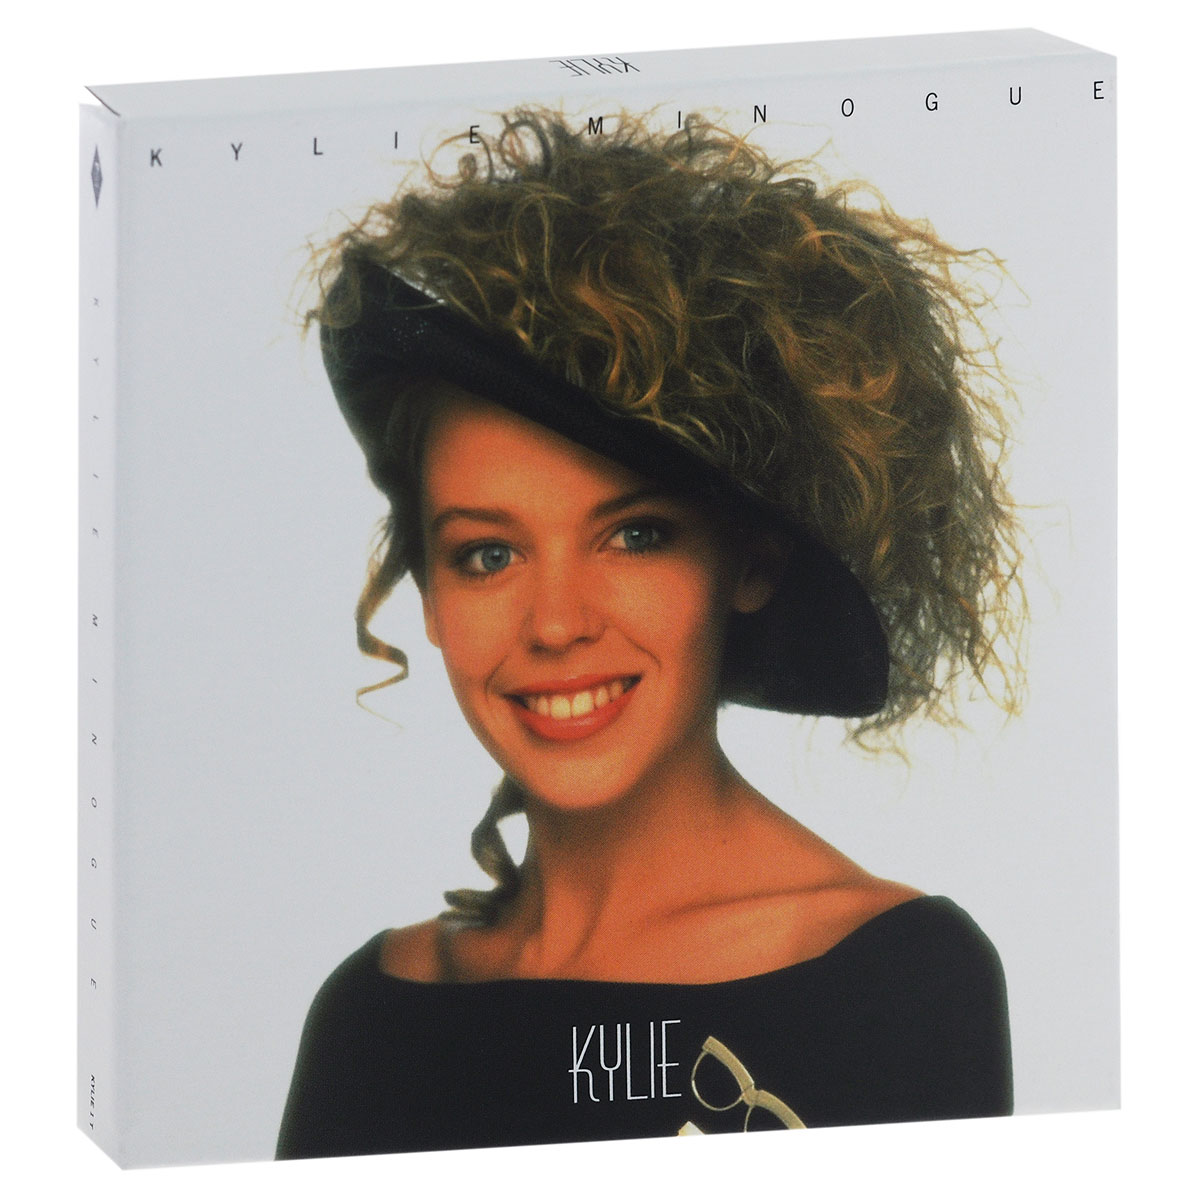 Кайли Миноуг Kylie Minogue. Kylie (2 CD + DVD) cd диск minogue kylie kylie christmas snow queen edition 1cd